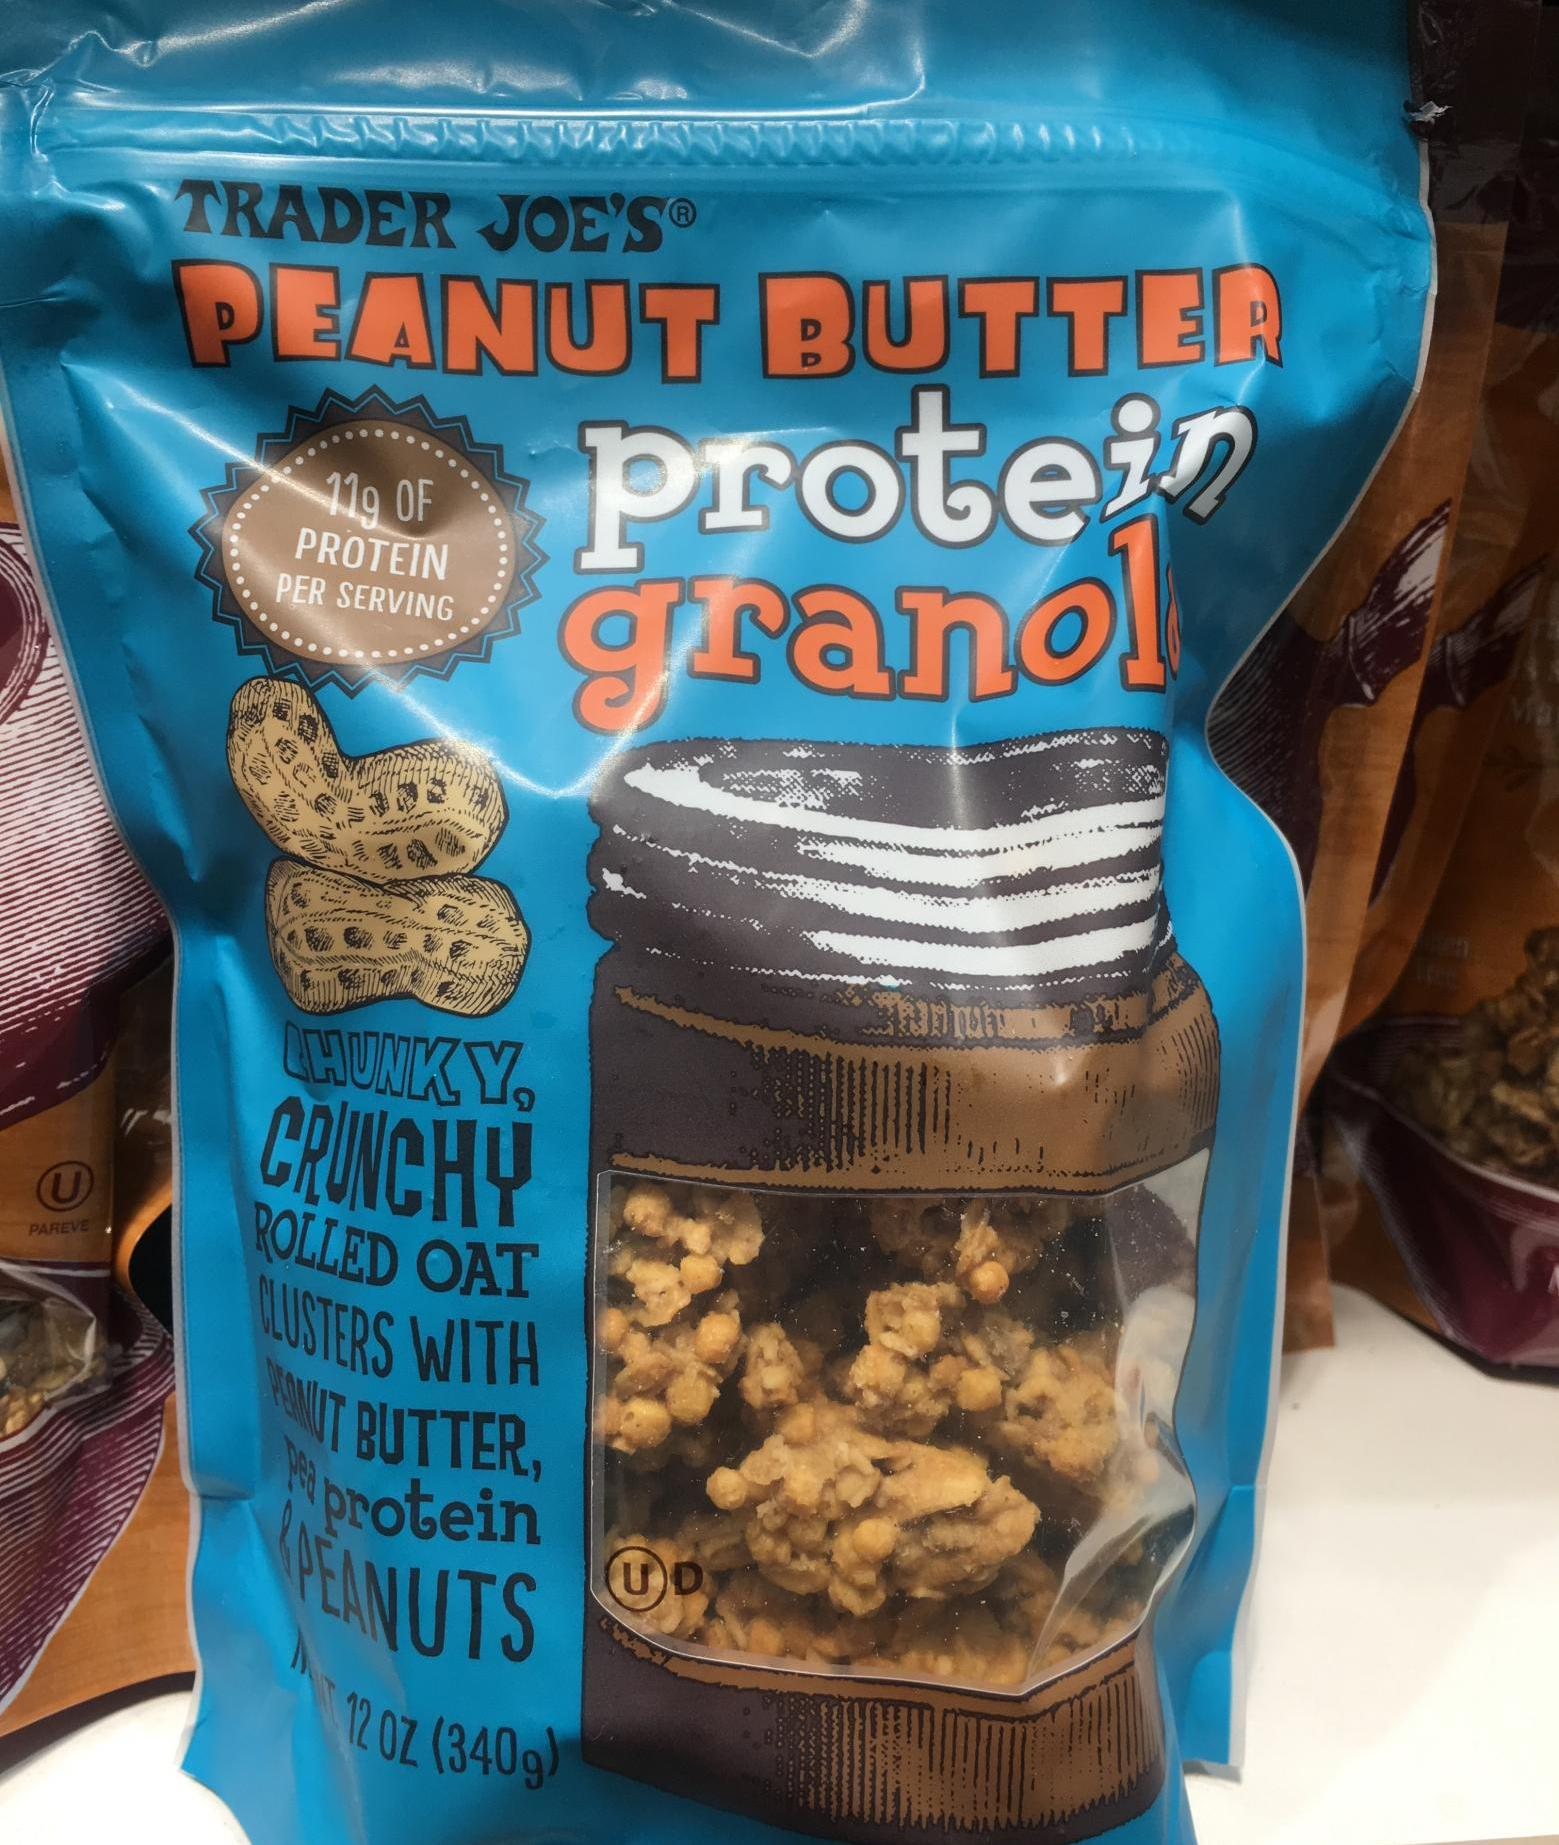 Trader Joe's protein snacks